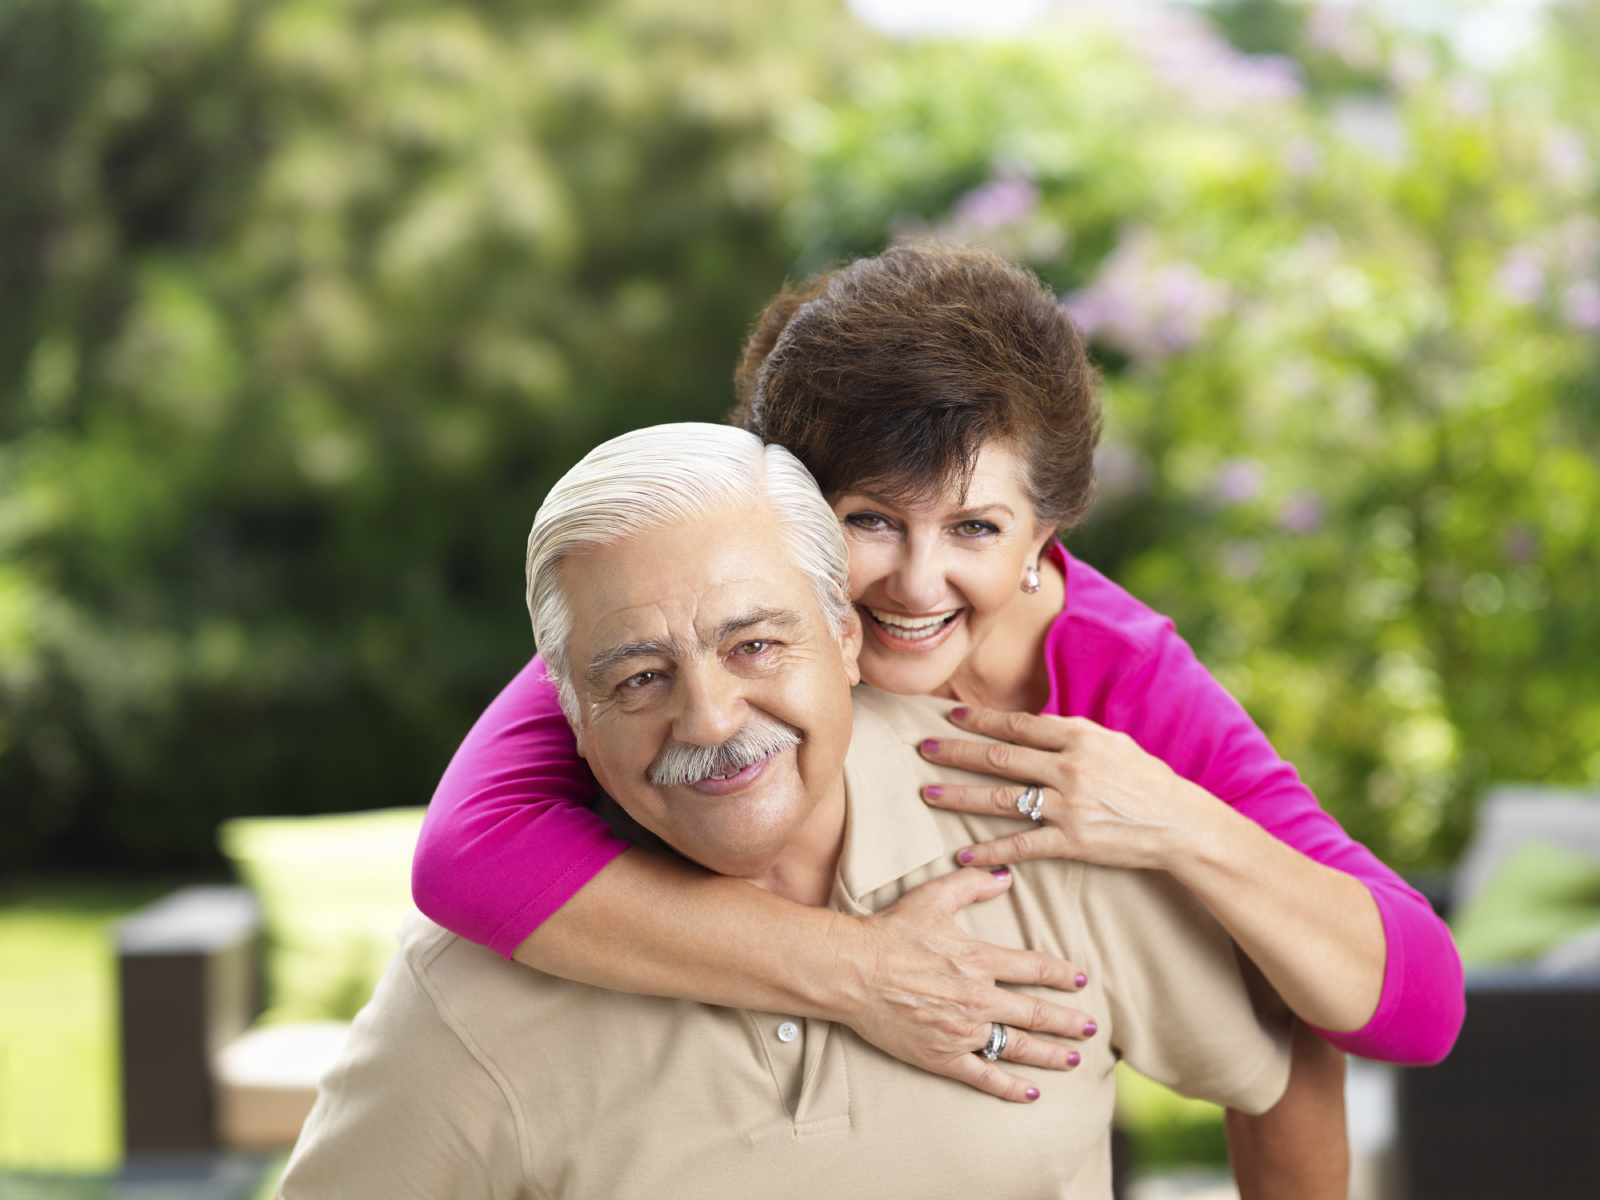 Most Reputable Seniors Online Dating Services In America